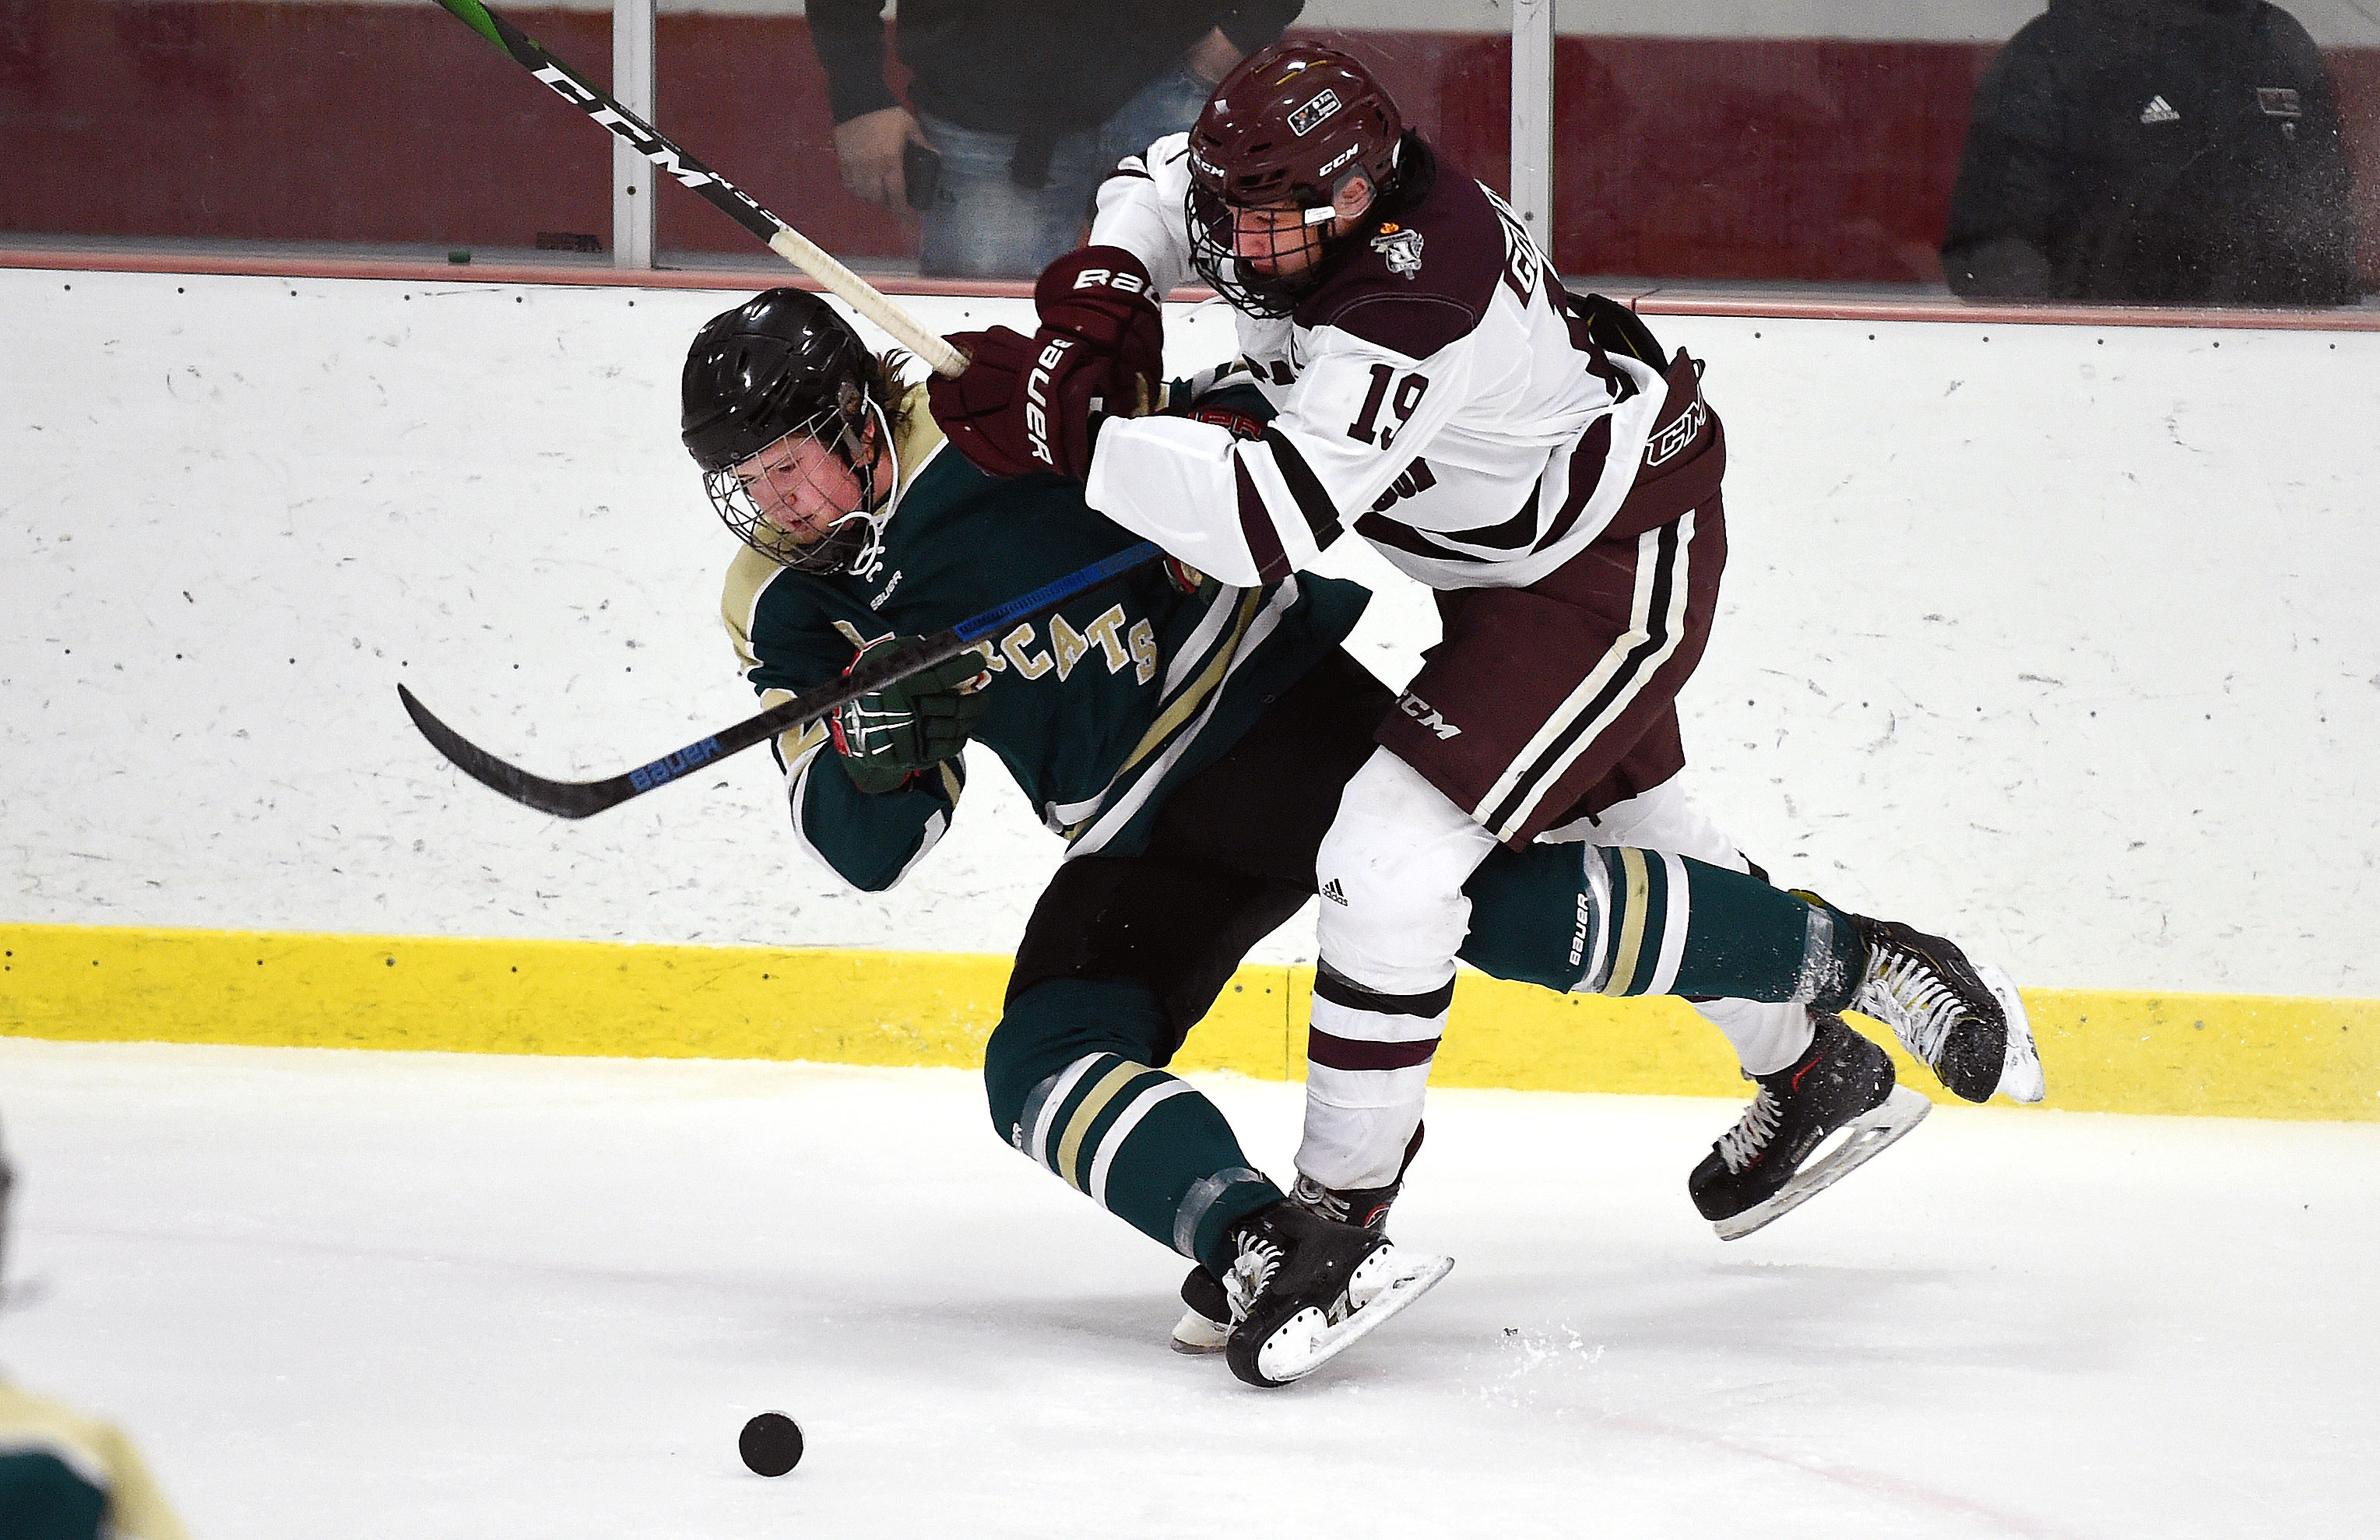 Kittson Central's Tyler Bakken, left, collides with St. Paul Johnson's Drake Teal on Saturday. Photo by Loren Nelson, LegacyHockeyPhotography.com